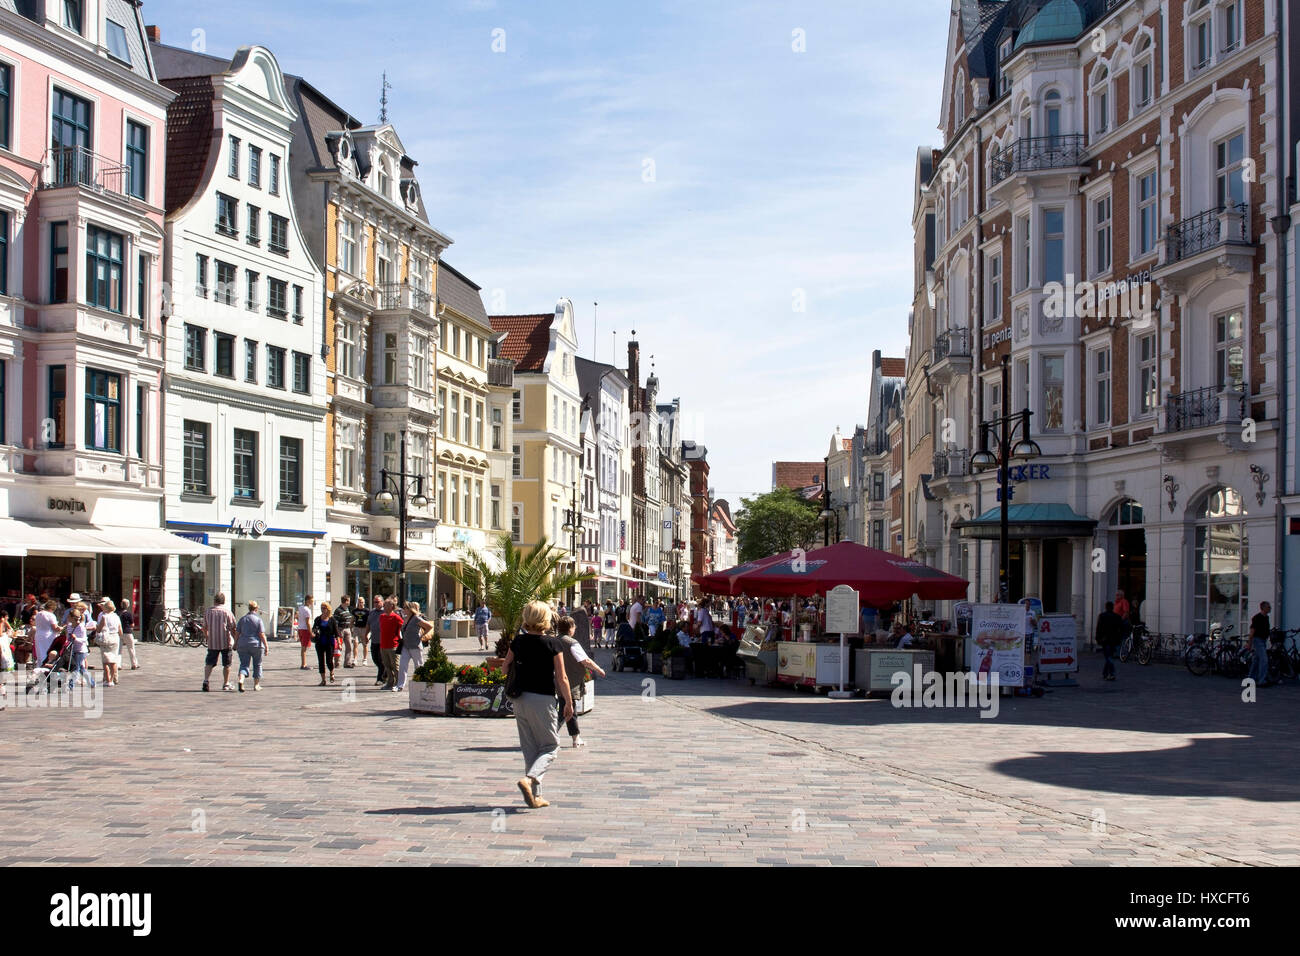 Rostock Shopping People Stroll In Summery Weather In The Shopping Streets Of